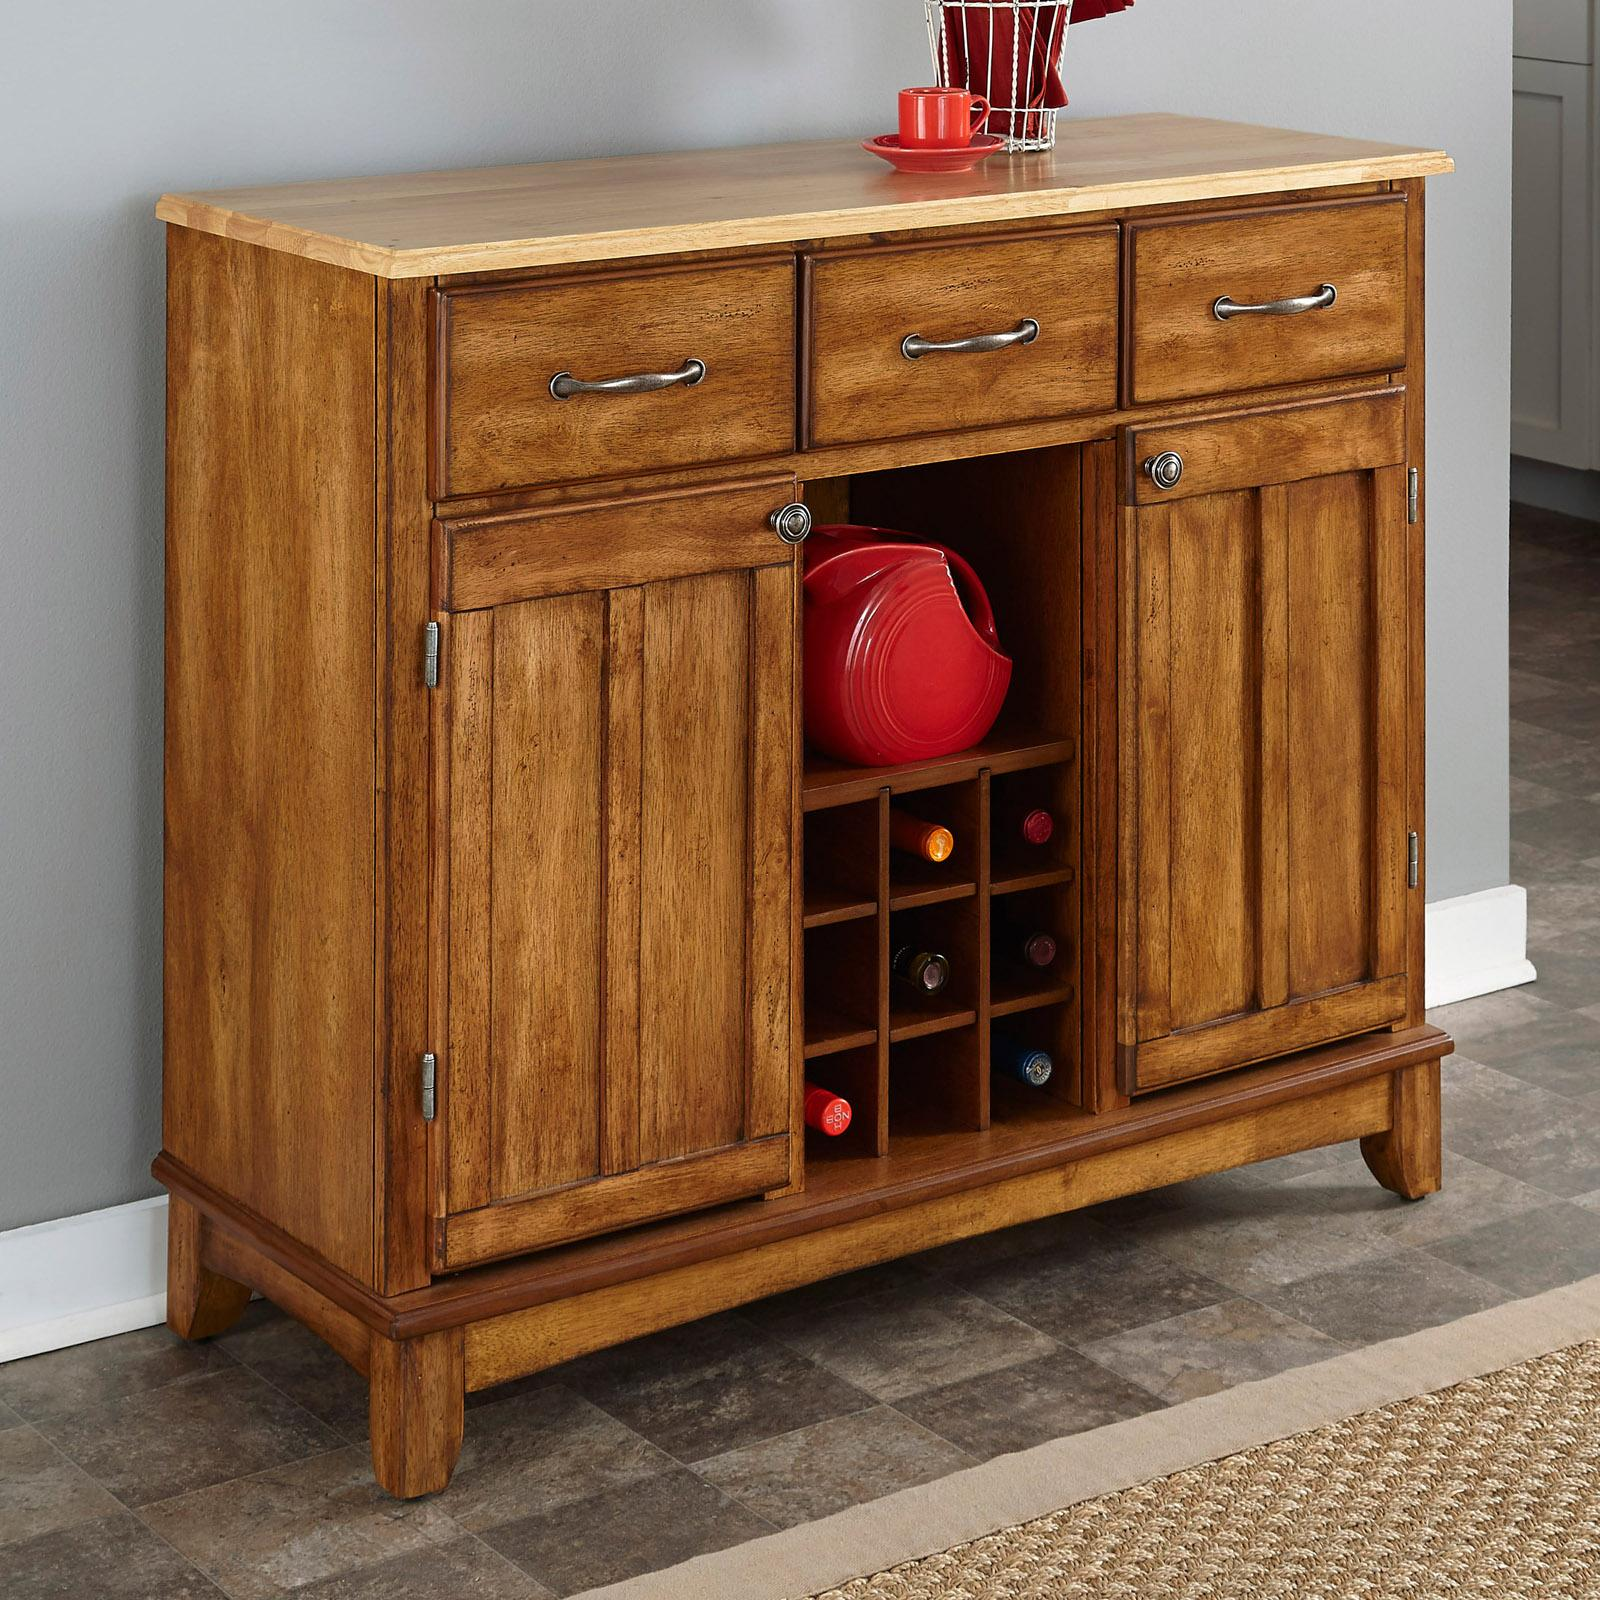 Home Styles Large Wood Server Kitchen Island / Server wit...